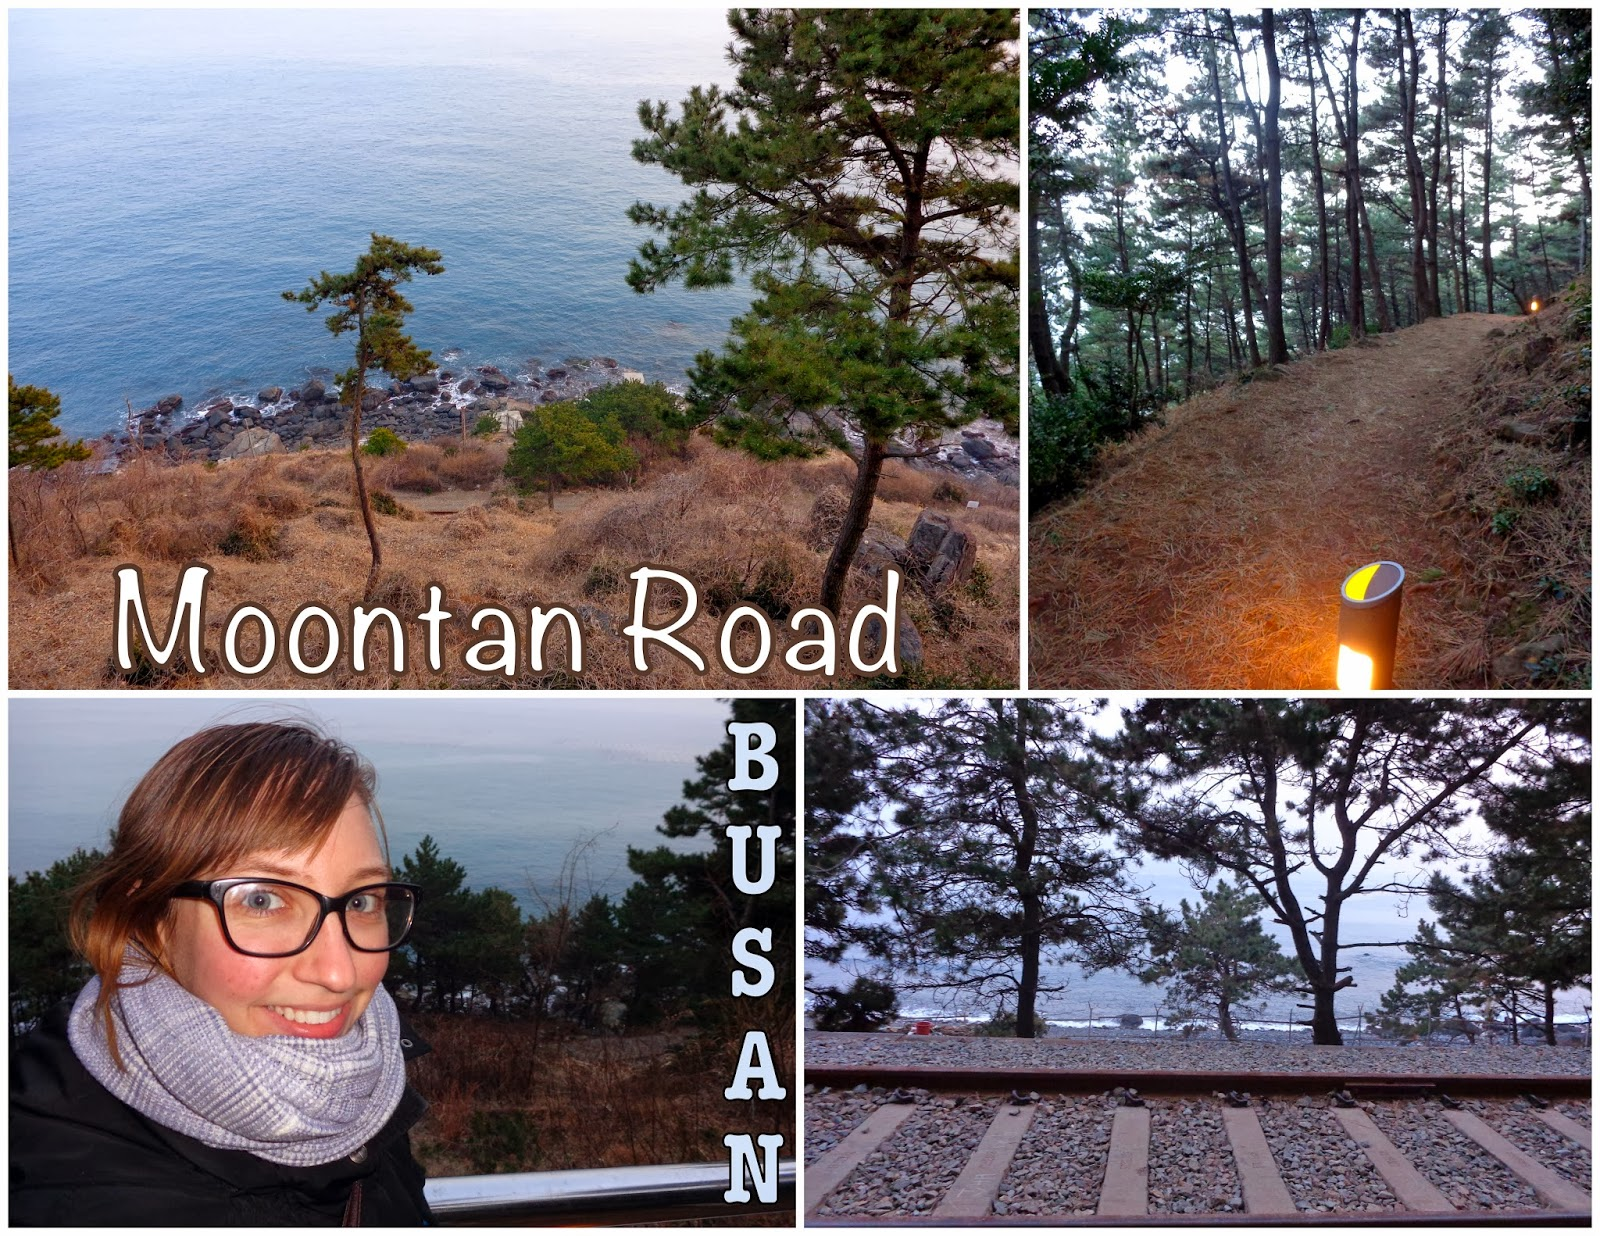 Moontan Road in Busan, Korea